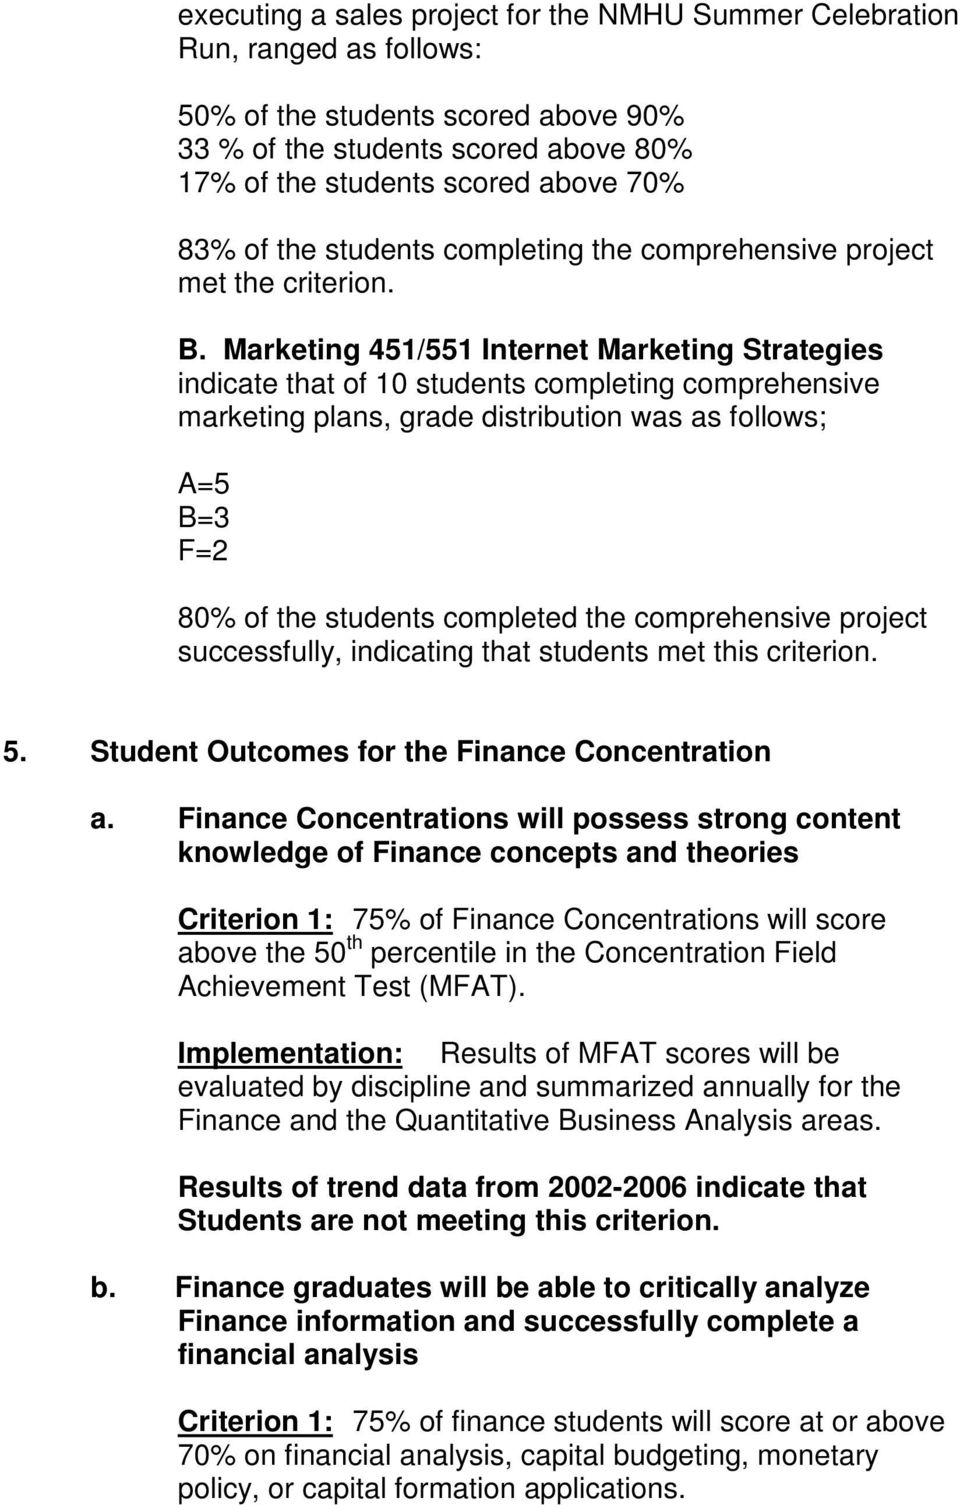 Marketing 451/551 Internet Marketing Strategies indicate that of 10 students completing comprehensive marketing plans, grade distribution was as follows; A=5 B=3 F=2 80% of the students completed the